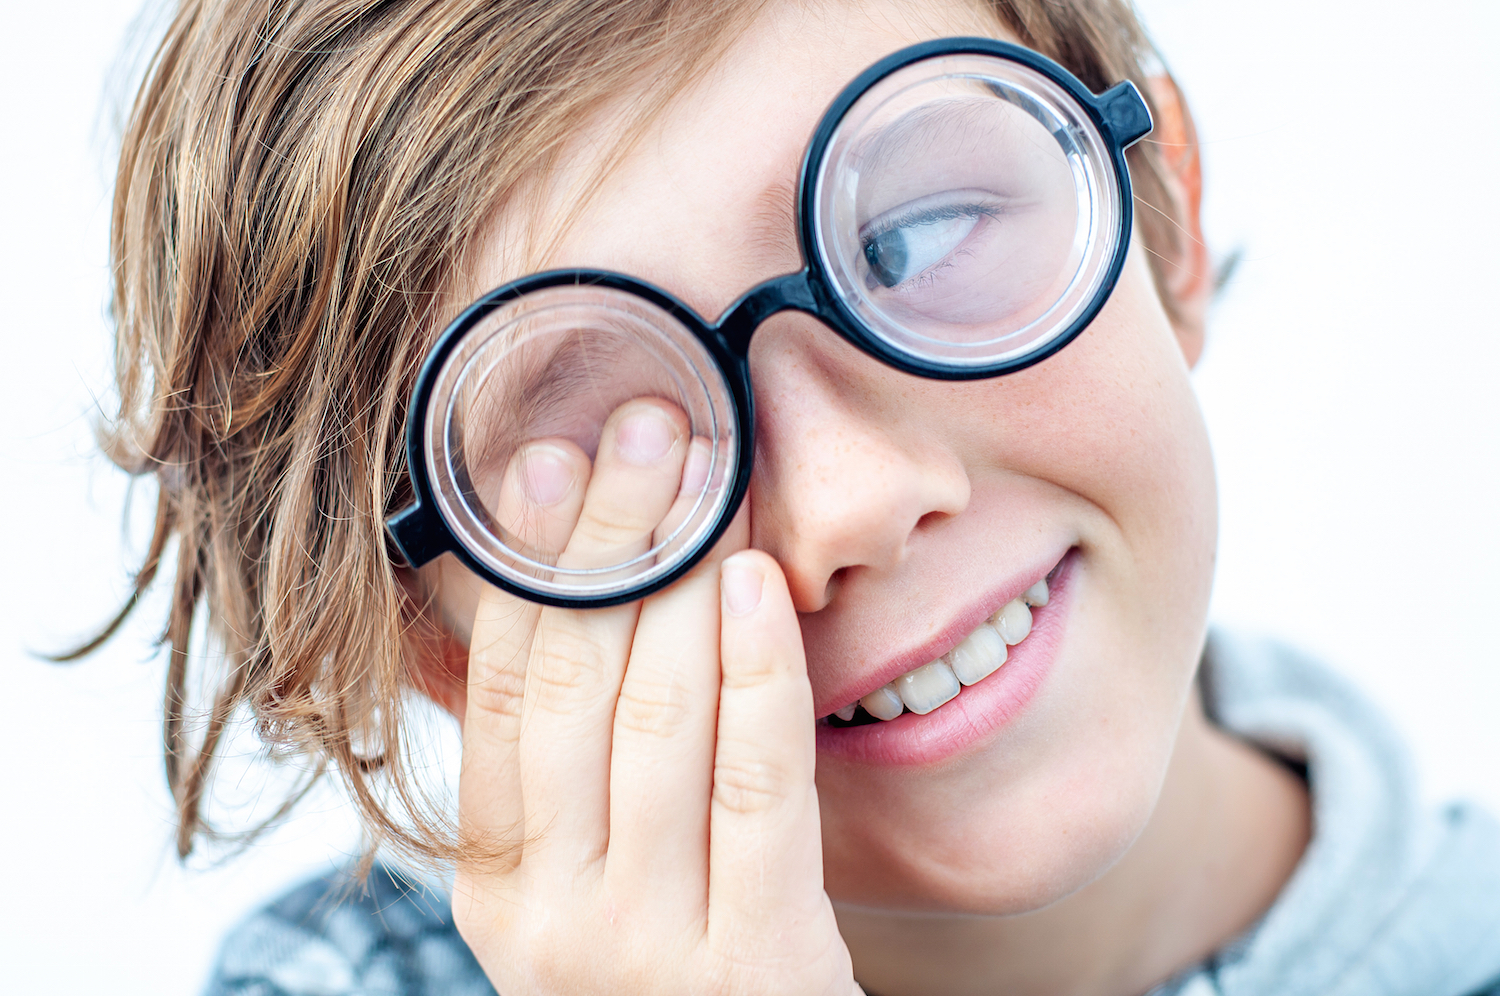 Conservative Approach to Myopia in Children is Short-Sighted